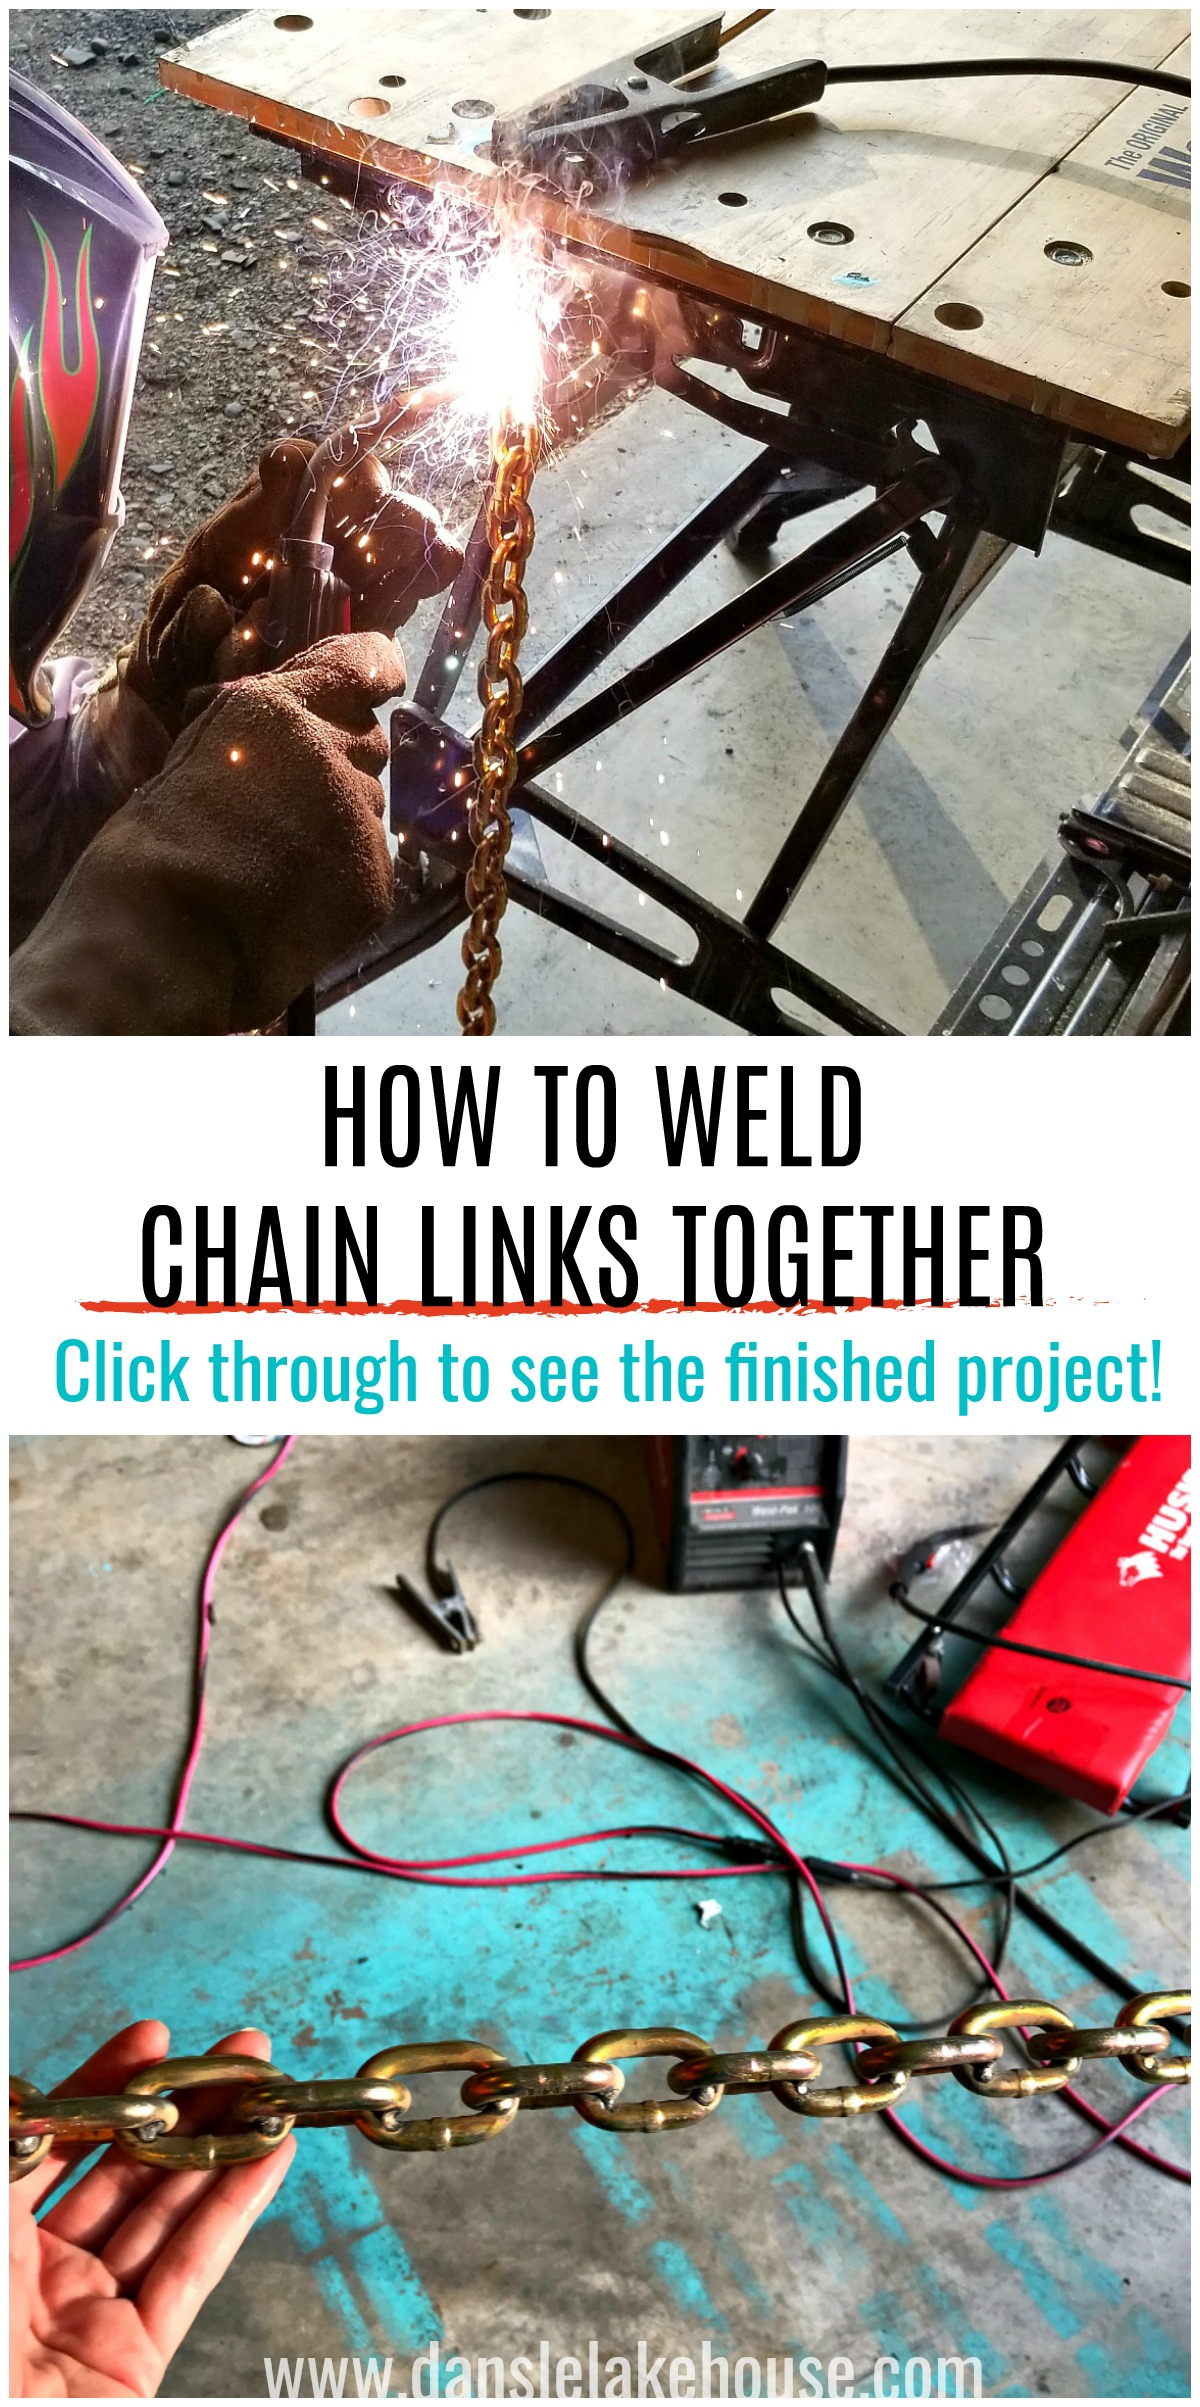 How to weld chain links together